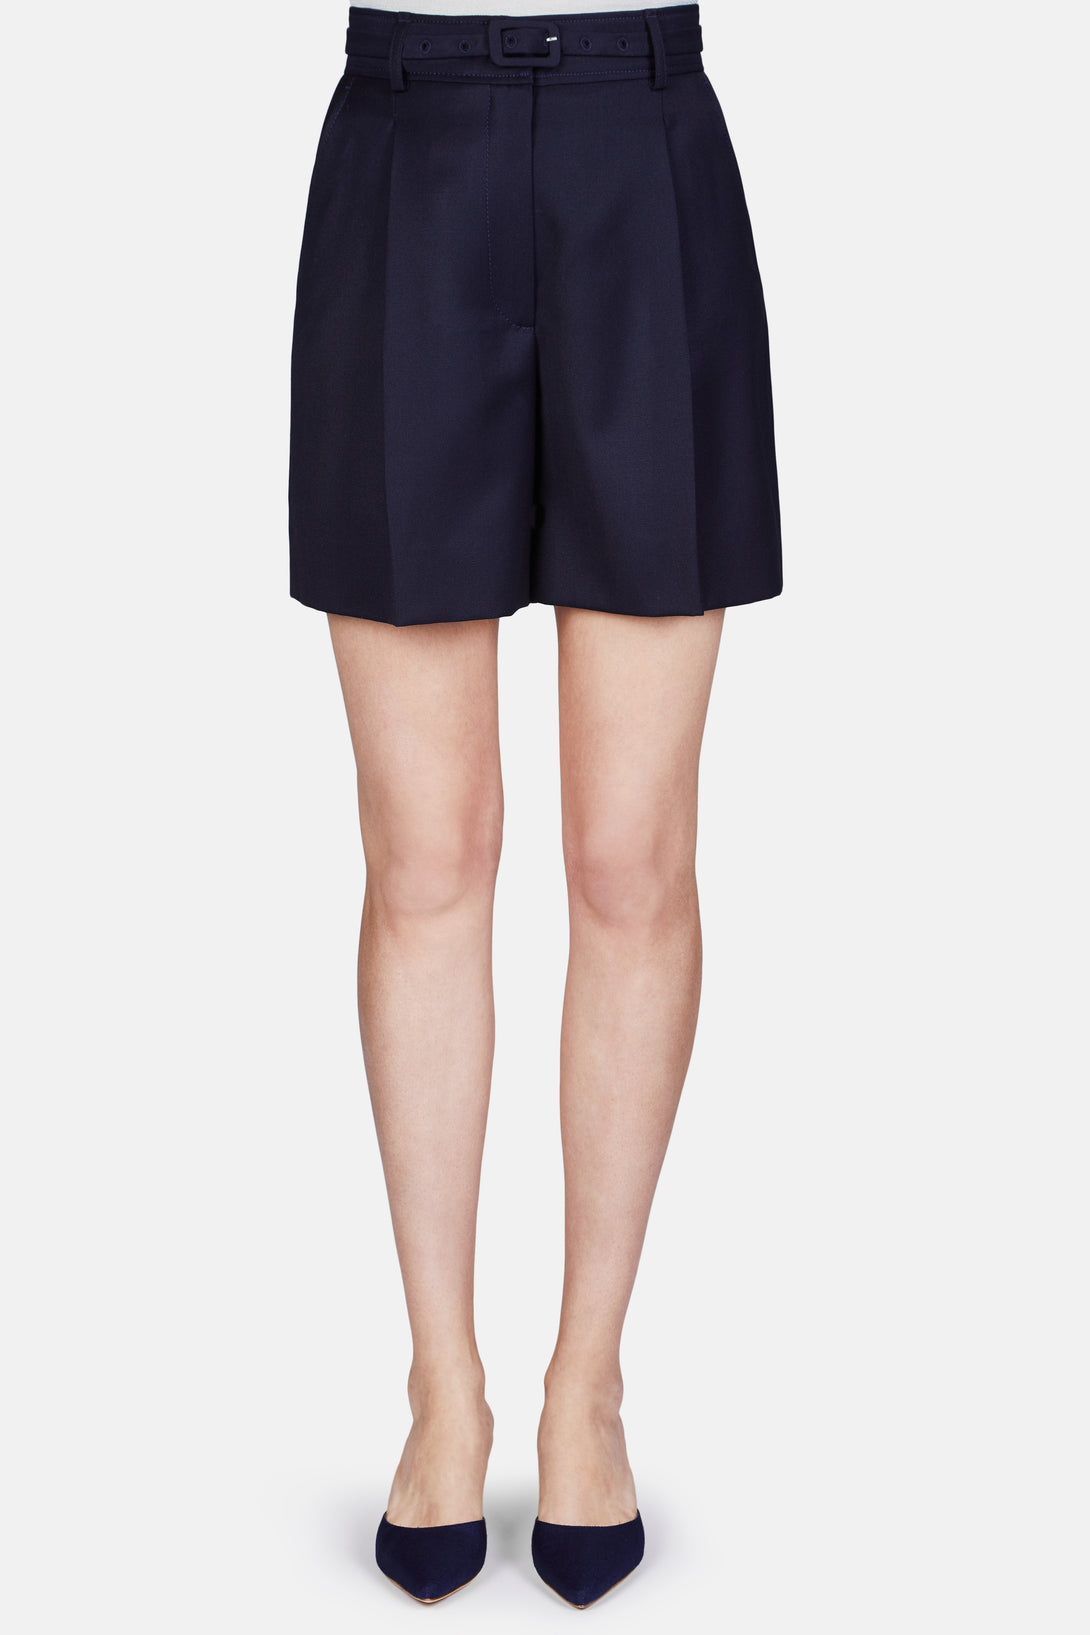 Clara Front Pleat Belted Short - Dark Navy